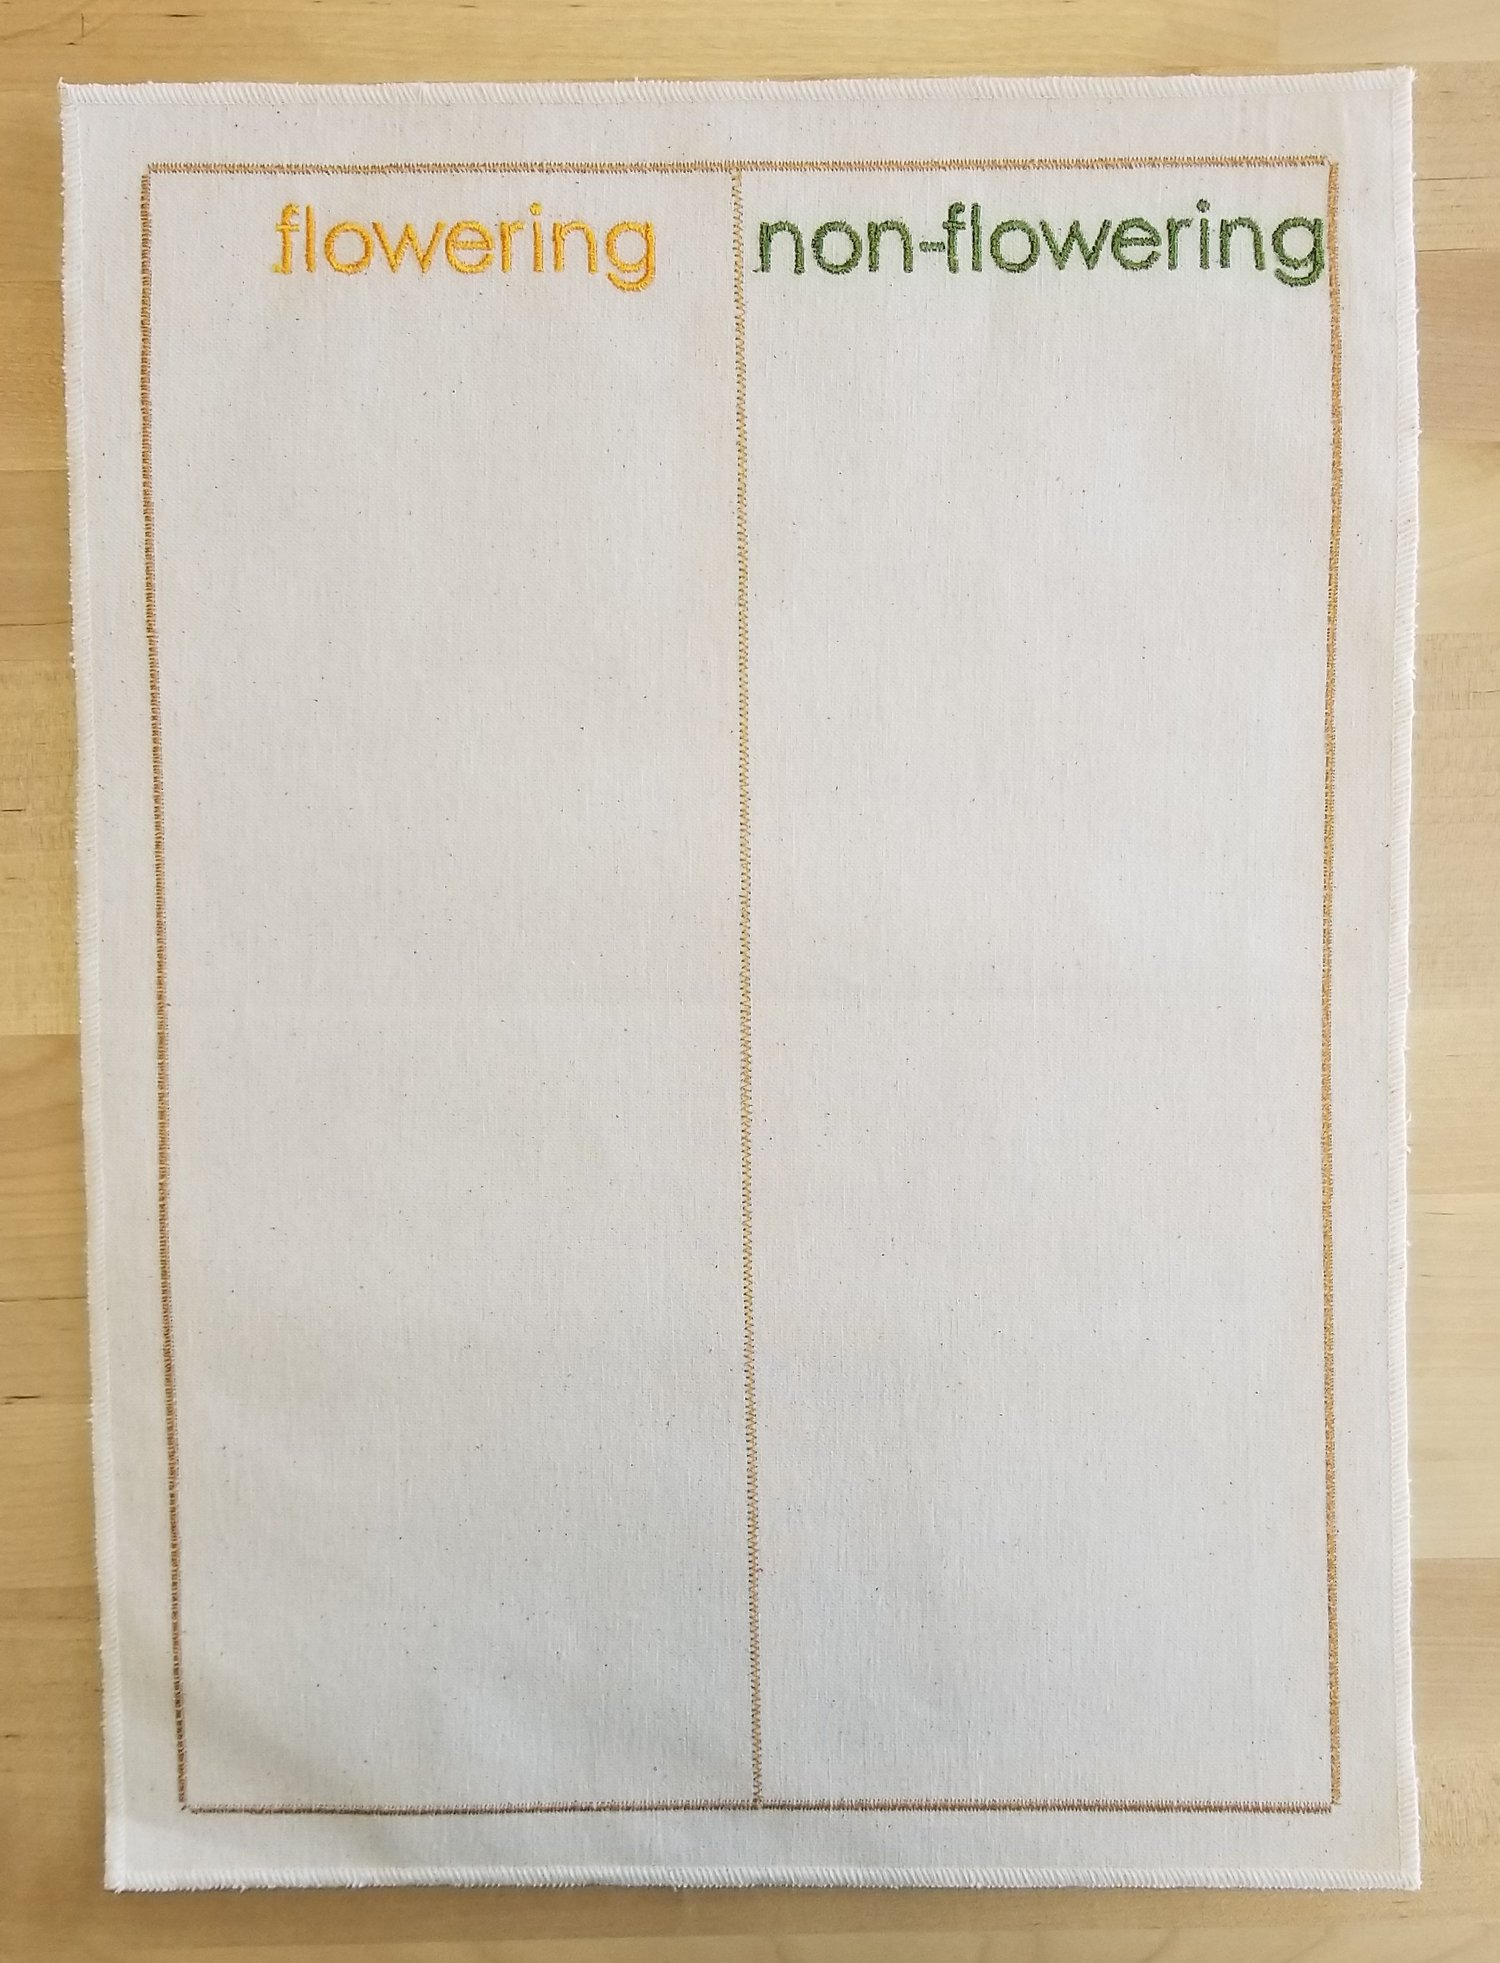 Embroidered Flowering/Non-Flowering Sorting Mat